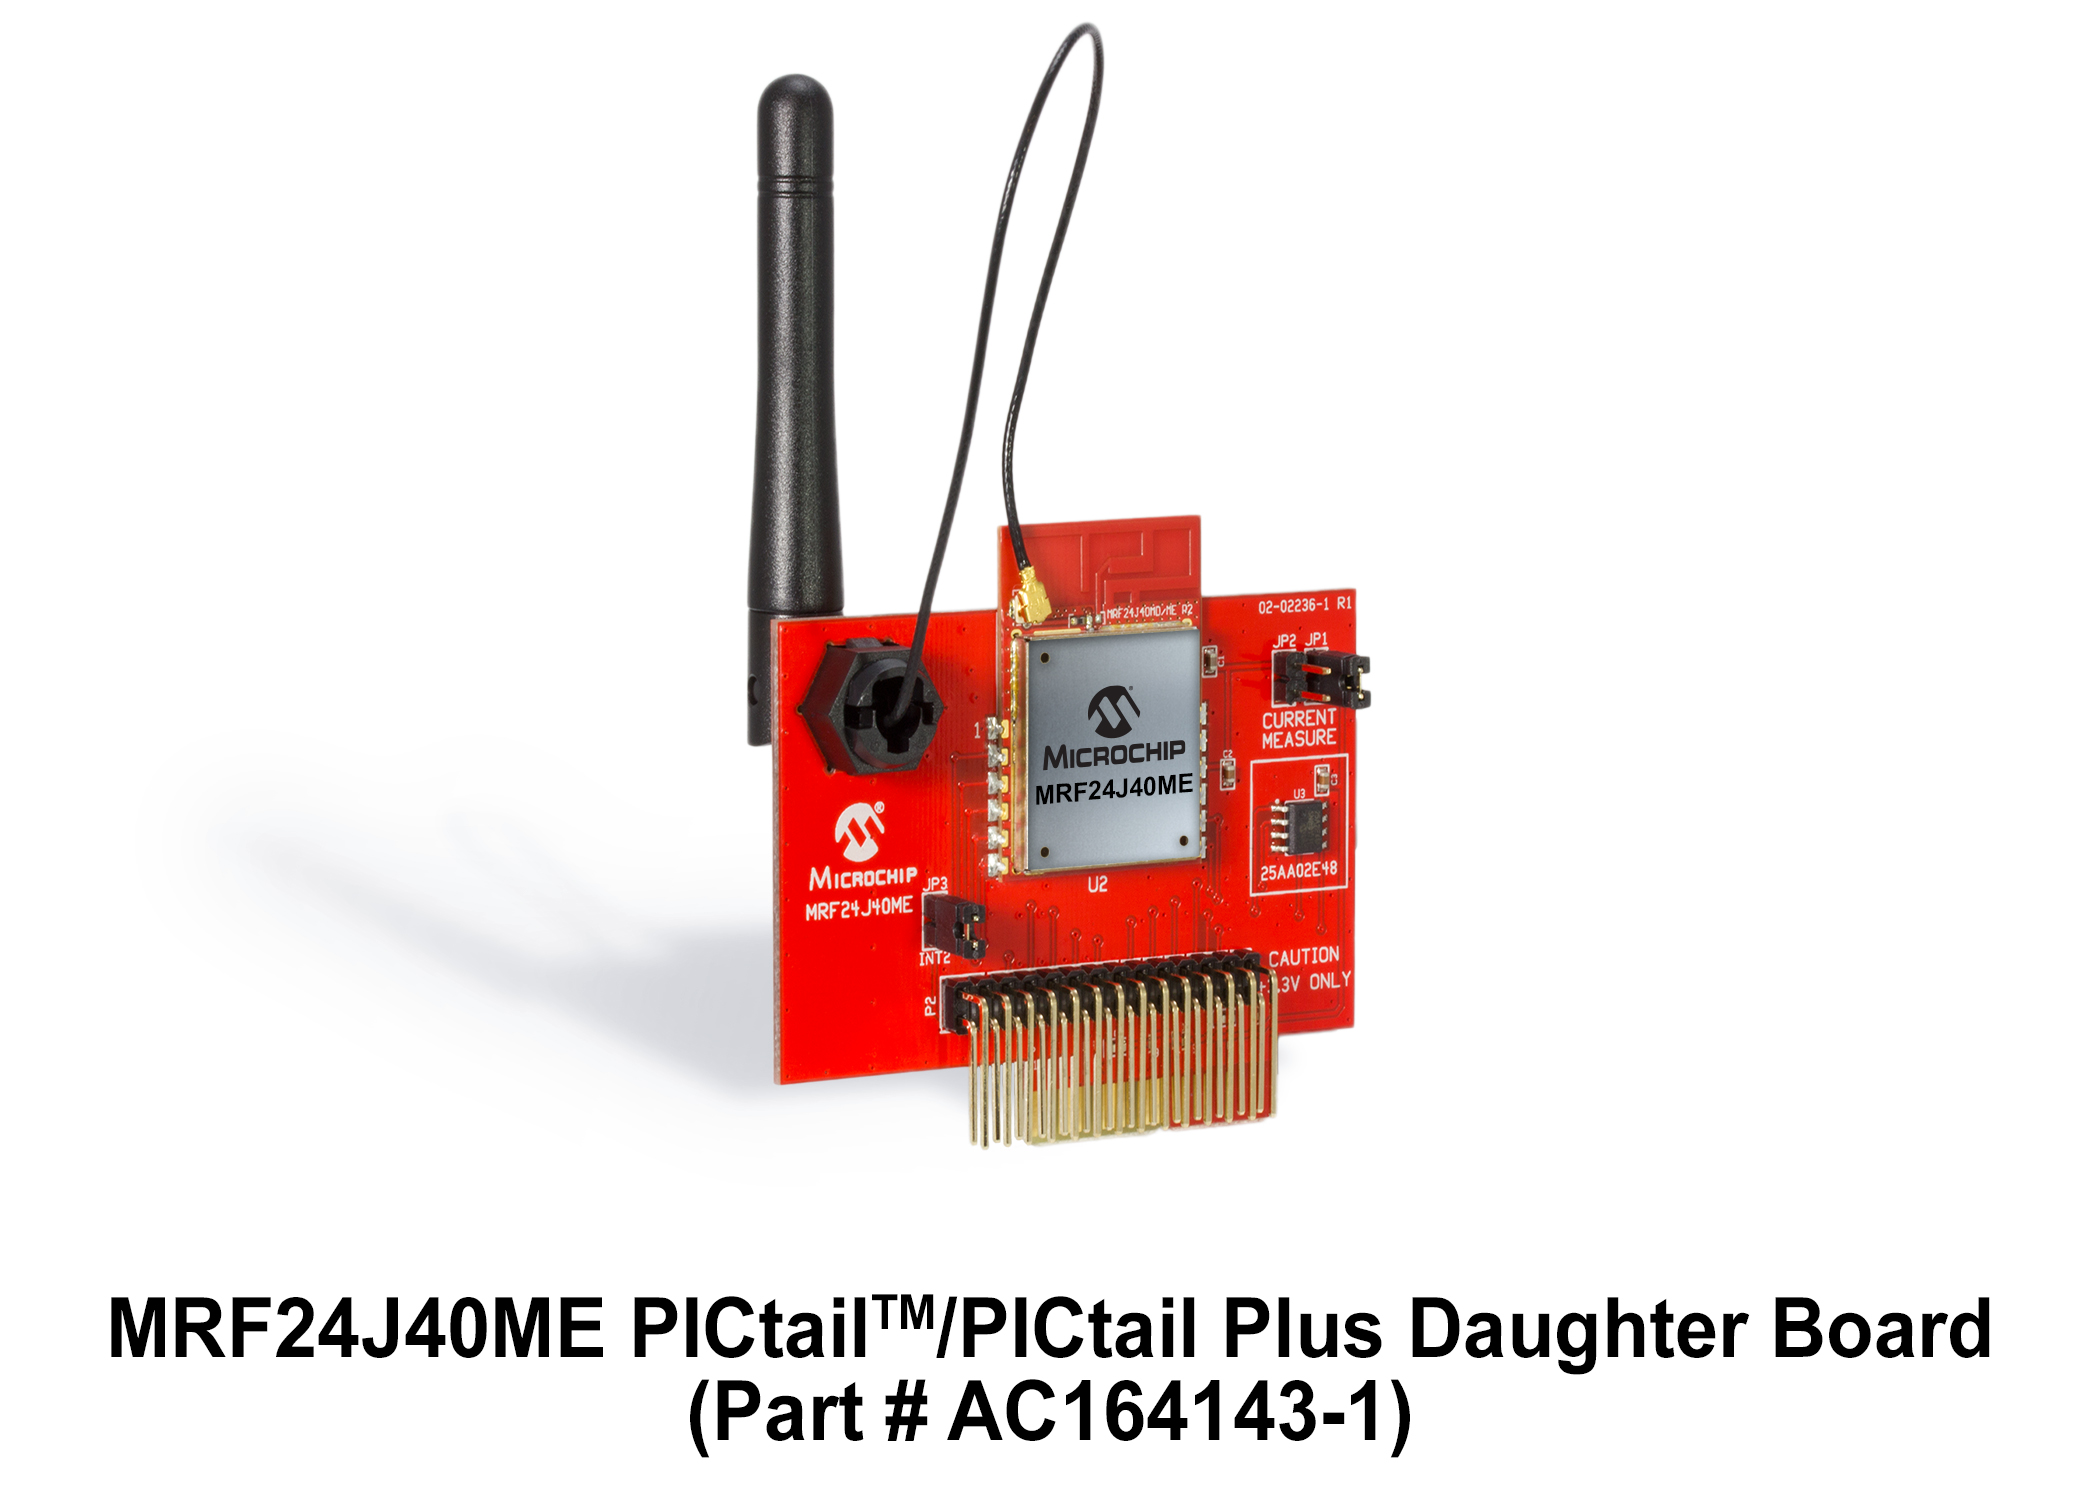 MRF24J40ME PICtail/PICtail Plus Daughter Board AC164143-1